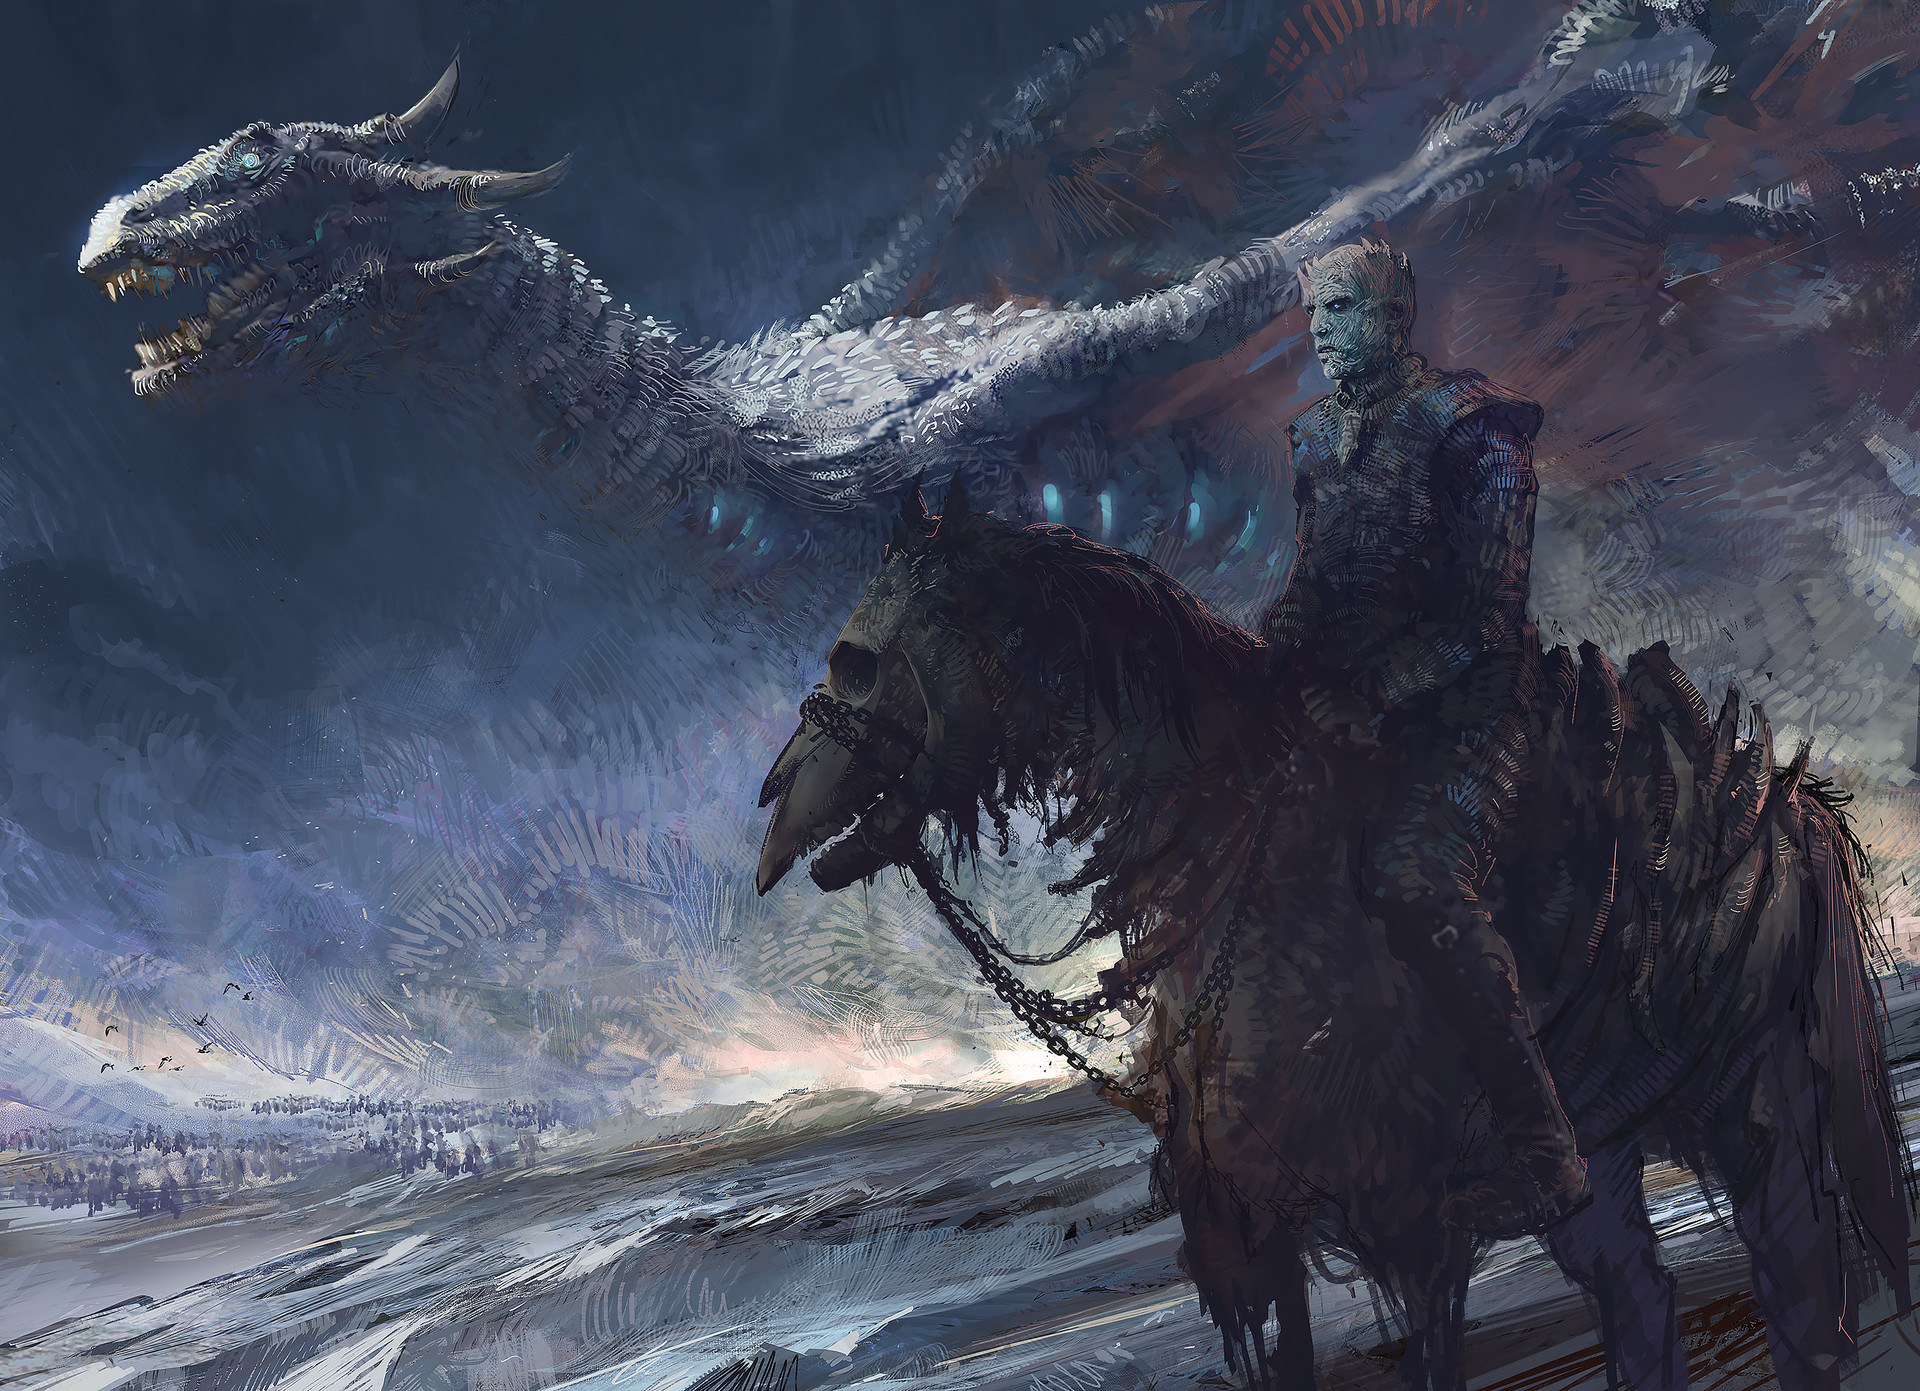 Dragon Game Of Thrones Night King Game Of Thrones White Walker 1920x1391